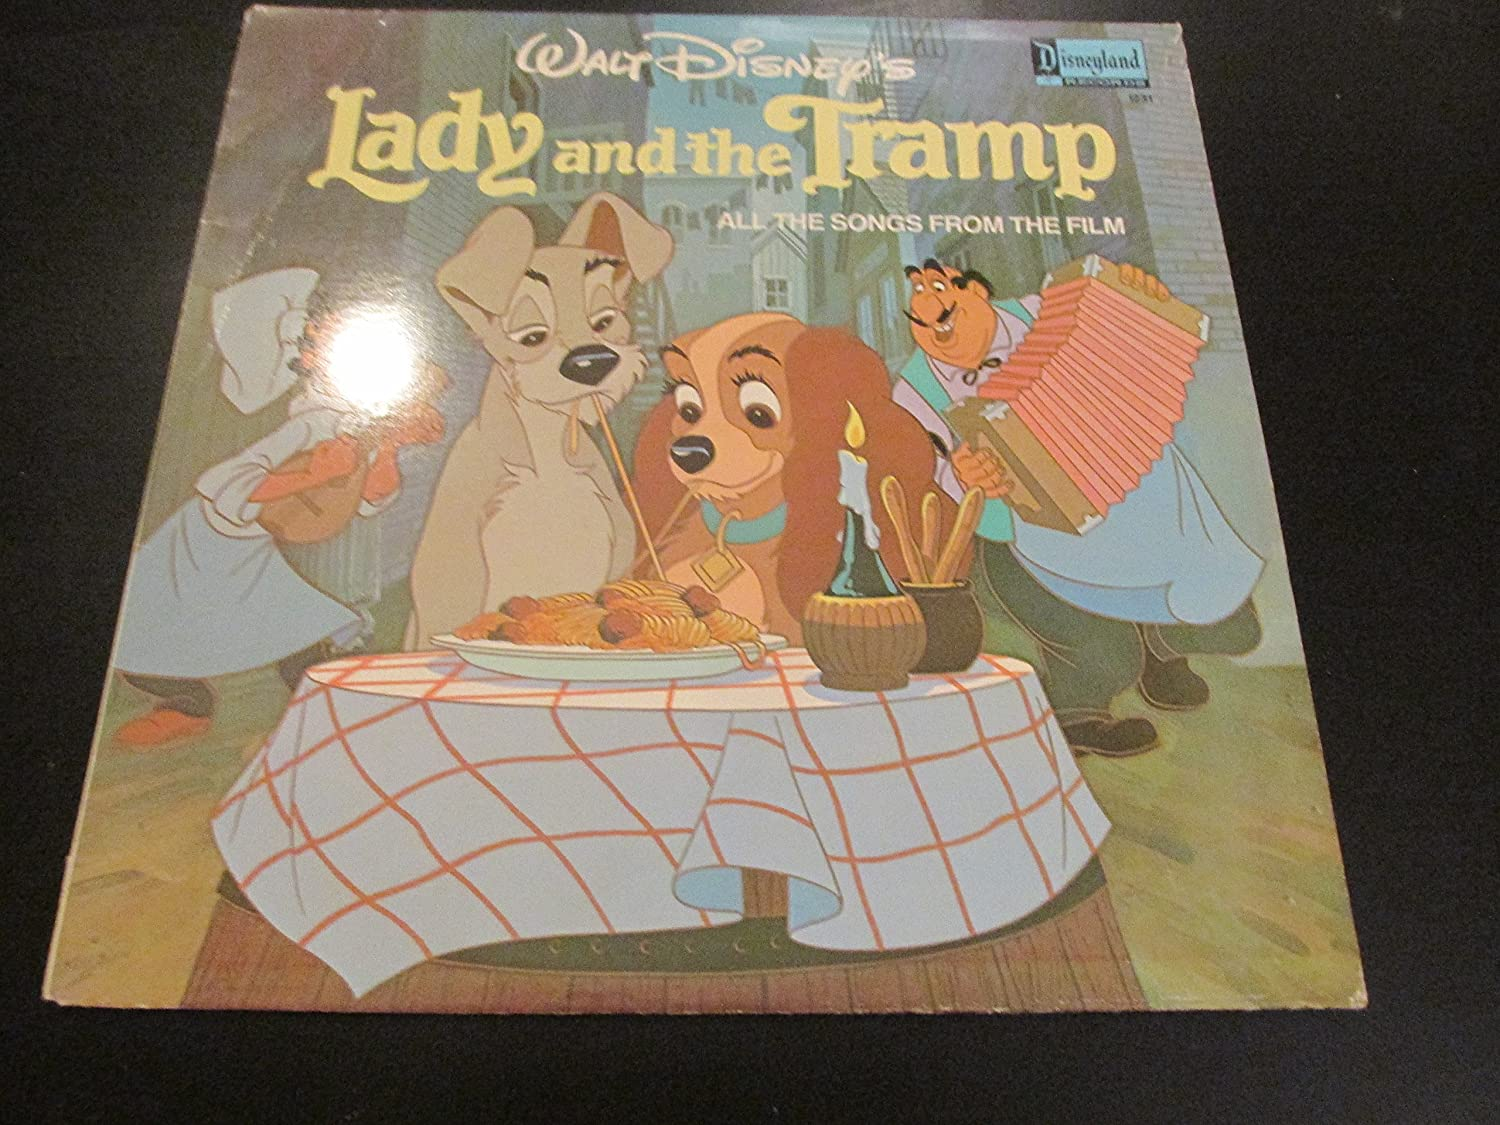 Peggy Lee Sonny Burke Tutti Camaratta Walt Disney S Lady And The Tramp All The Songs From The Film Vinyl Lp Amazon Com Music